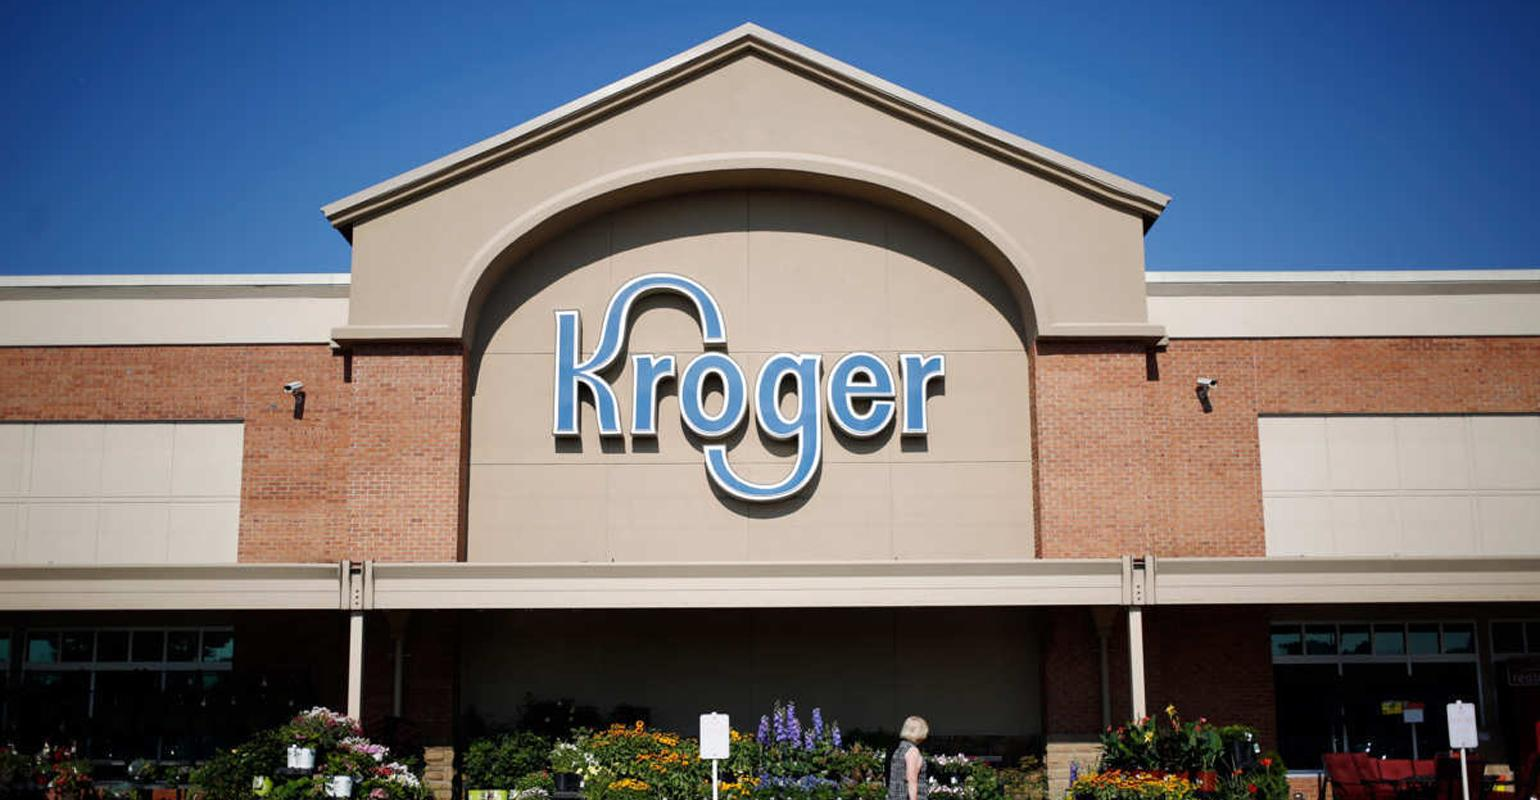 Front of the Kroger store